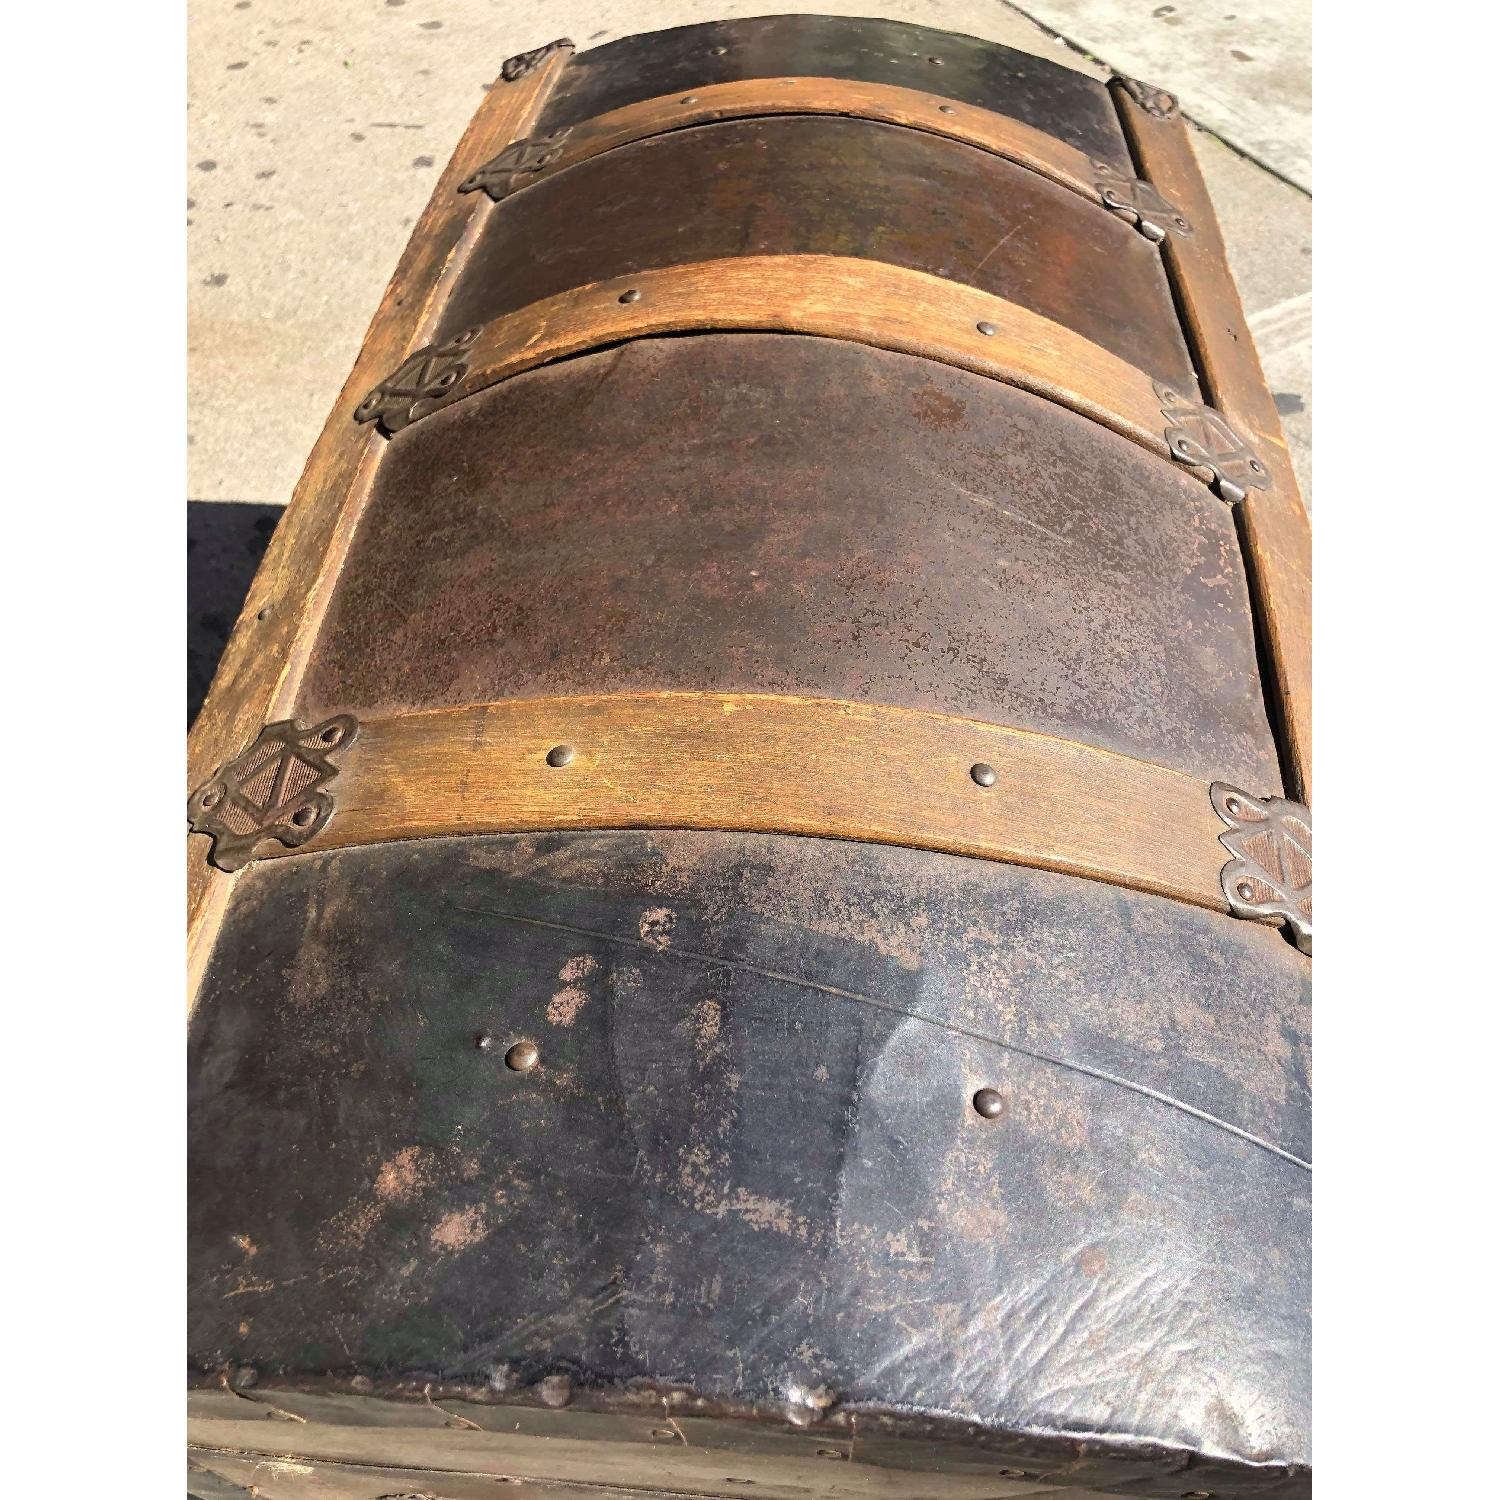 Antique 19th Century Dome Top Storage Trunk w/ Wheels - image-11